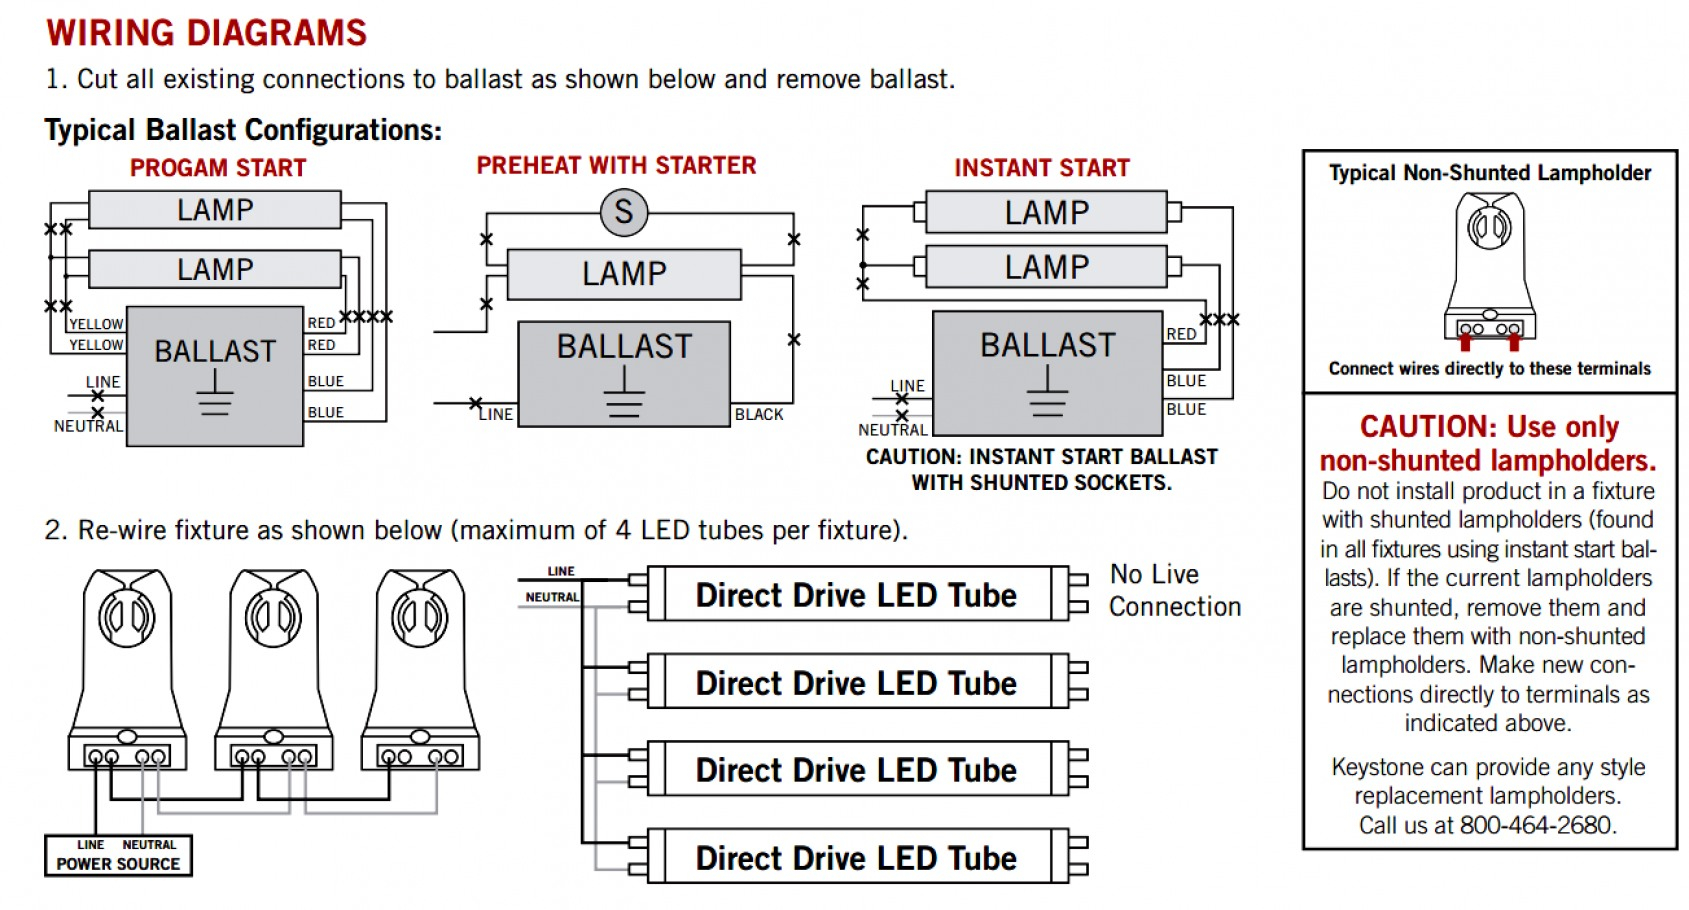 Led Tube 110 Wiring Diagram | Wiring Diagram - Wiring Diagram For Led Tube Lights